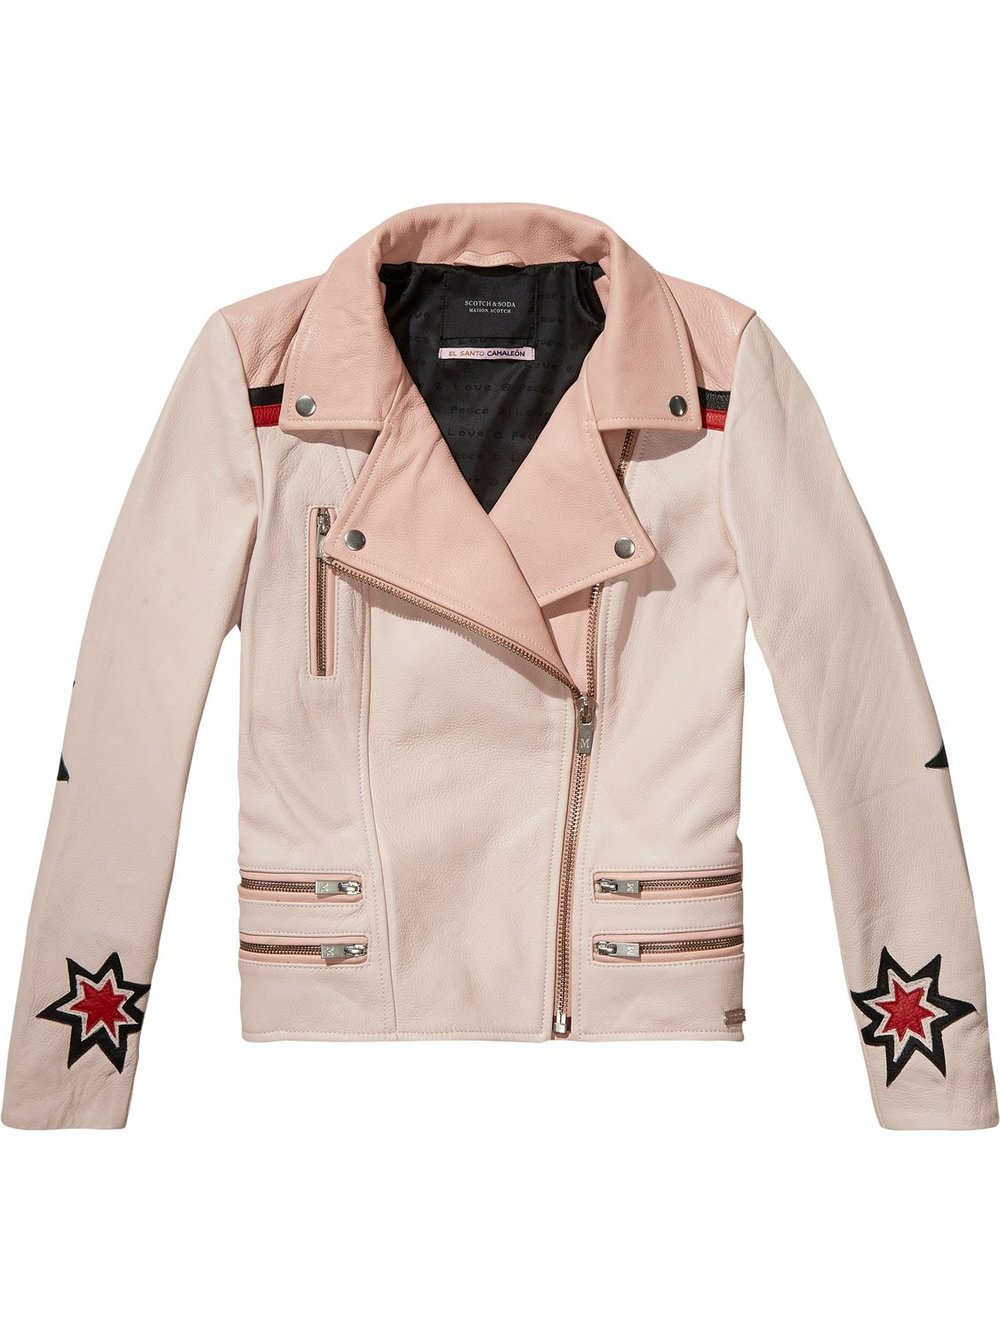 SCOTCH & SODA LEATHER EMBROIDERED STATEMENT COAT